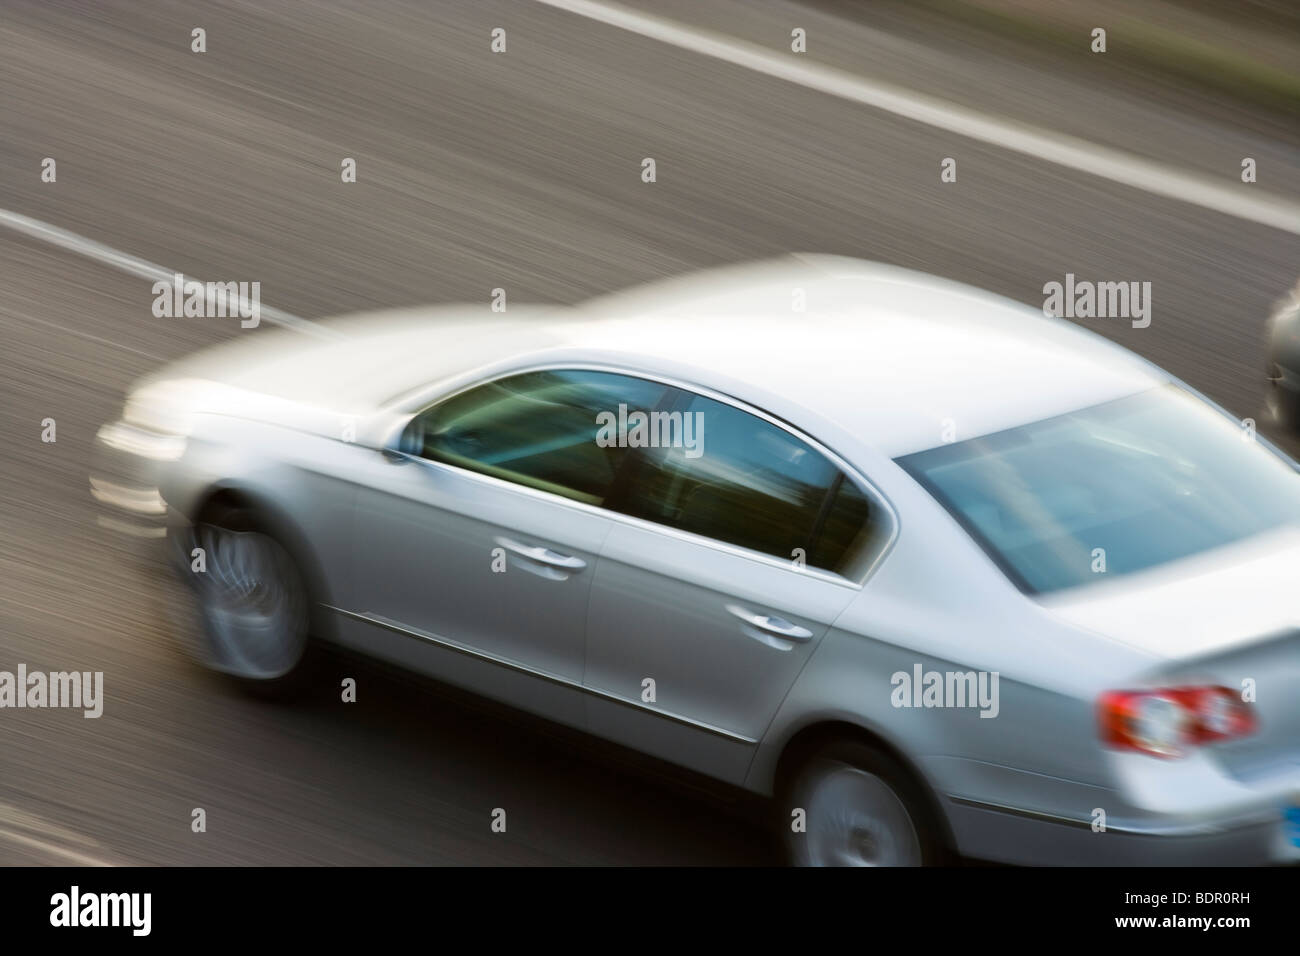 Car on motorway. UK - Stock Image